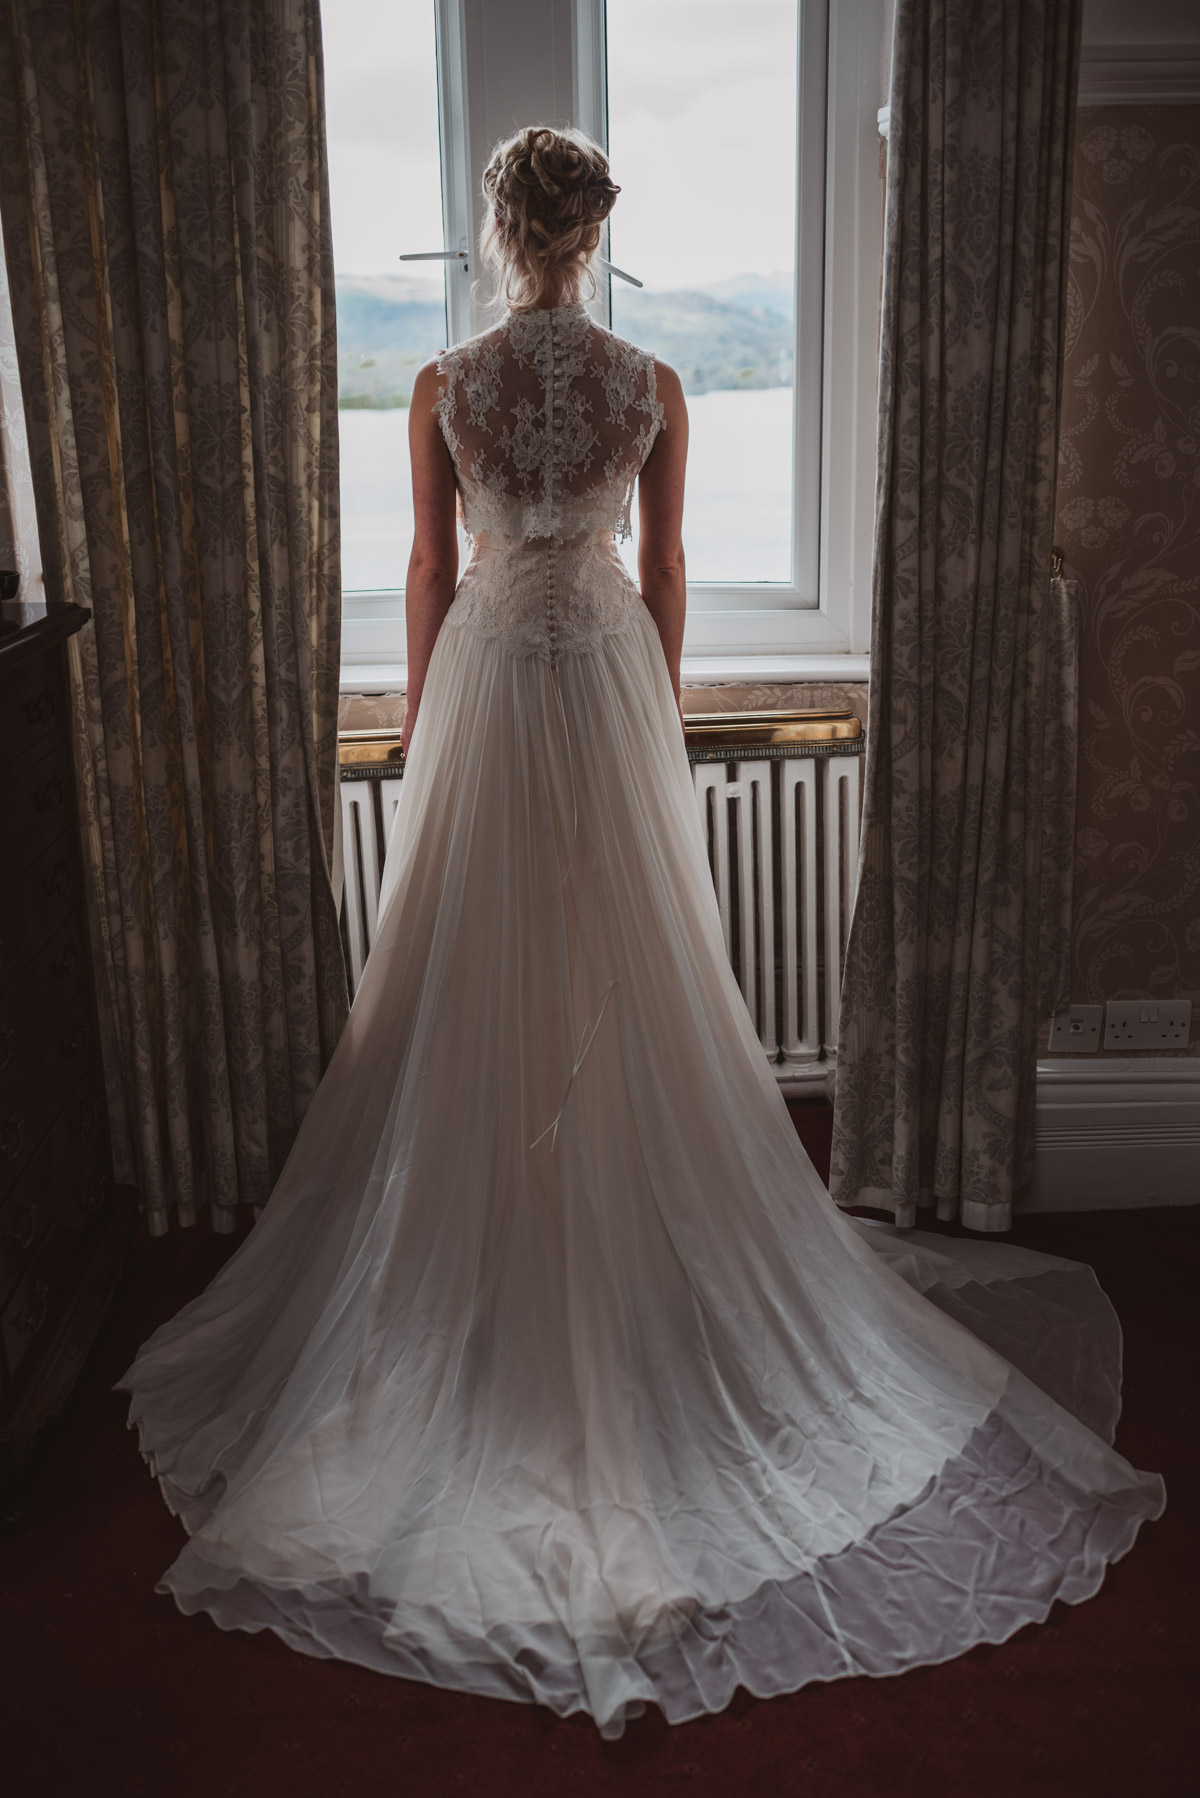 bride in front of window with lake backdrop